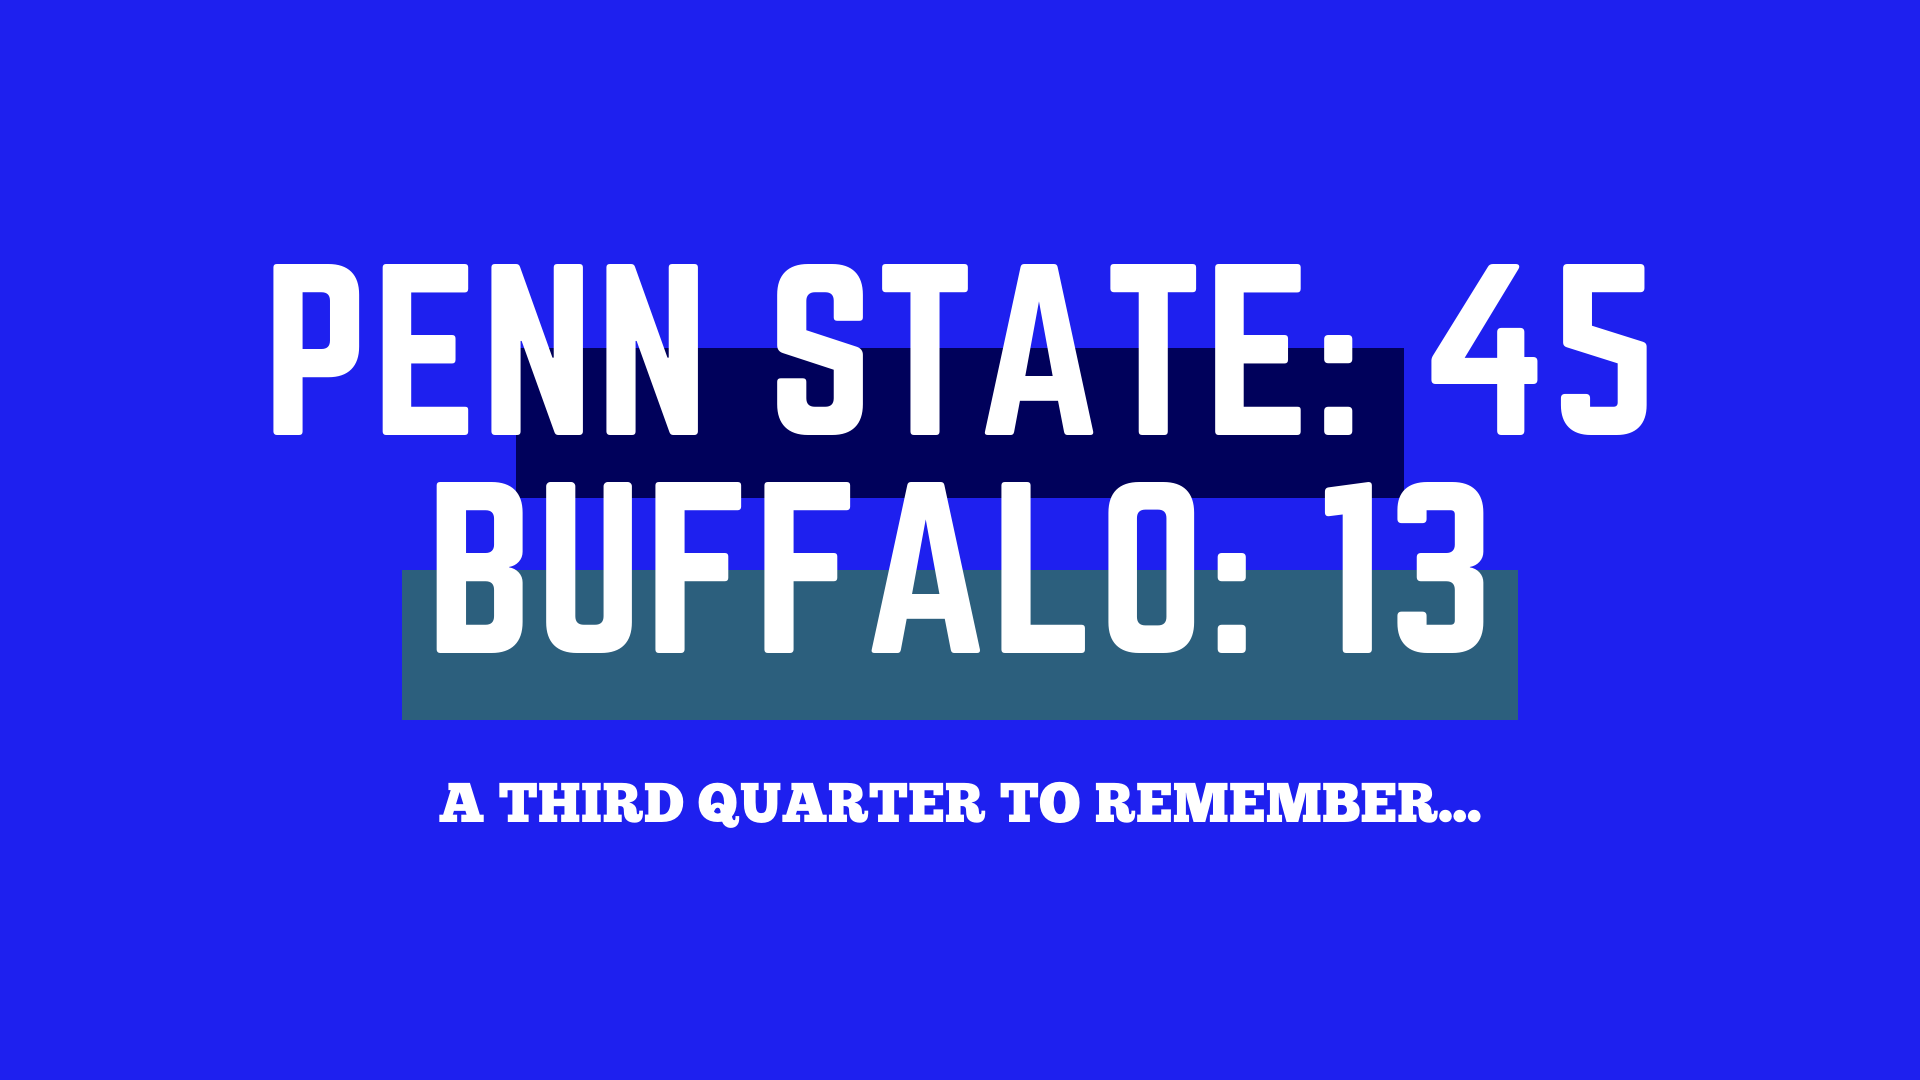 Just One Quarter Away: How Penn State Overcame a Slow Start to Rock Buffalo